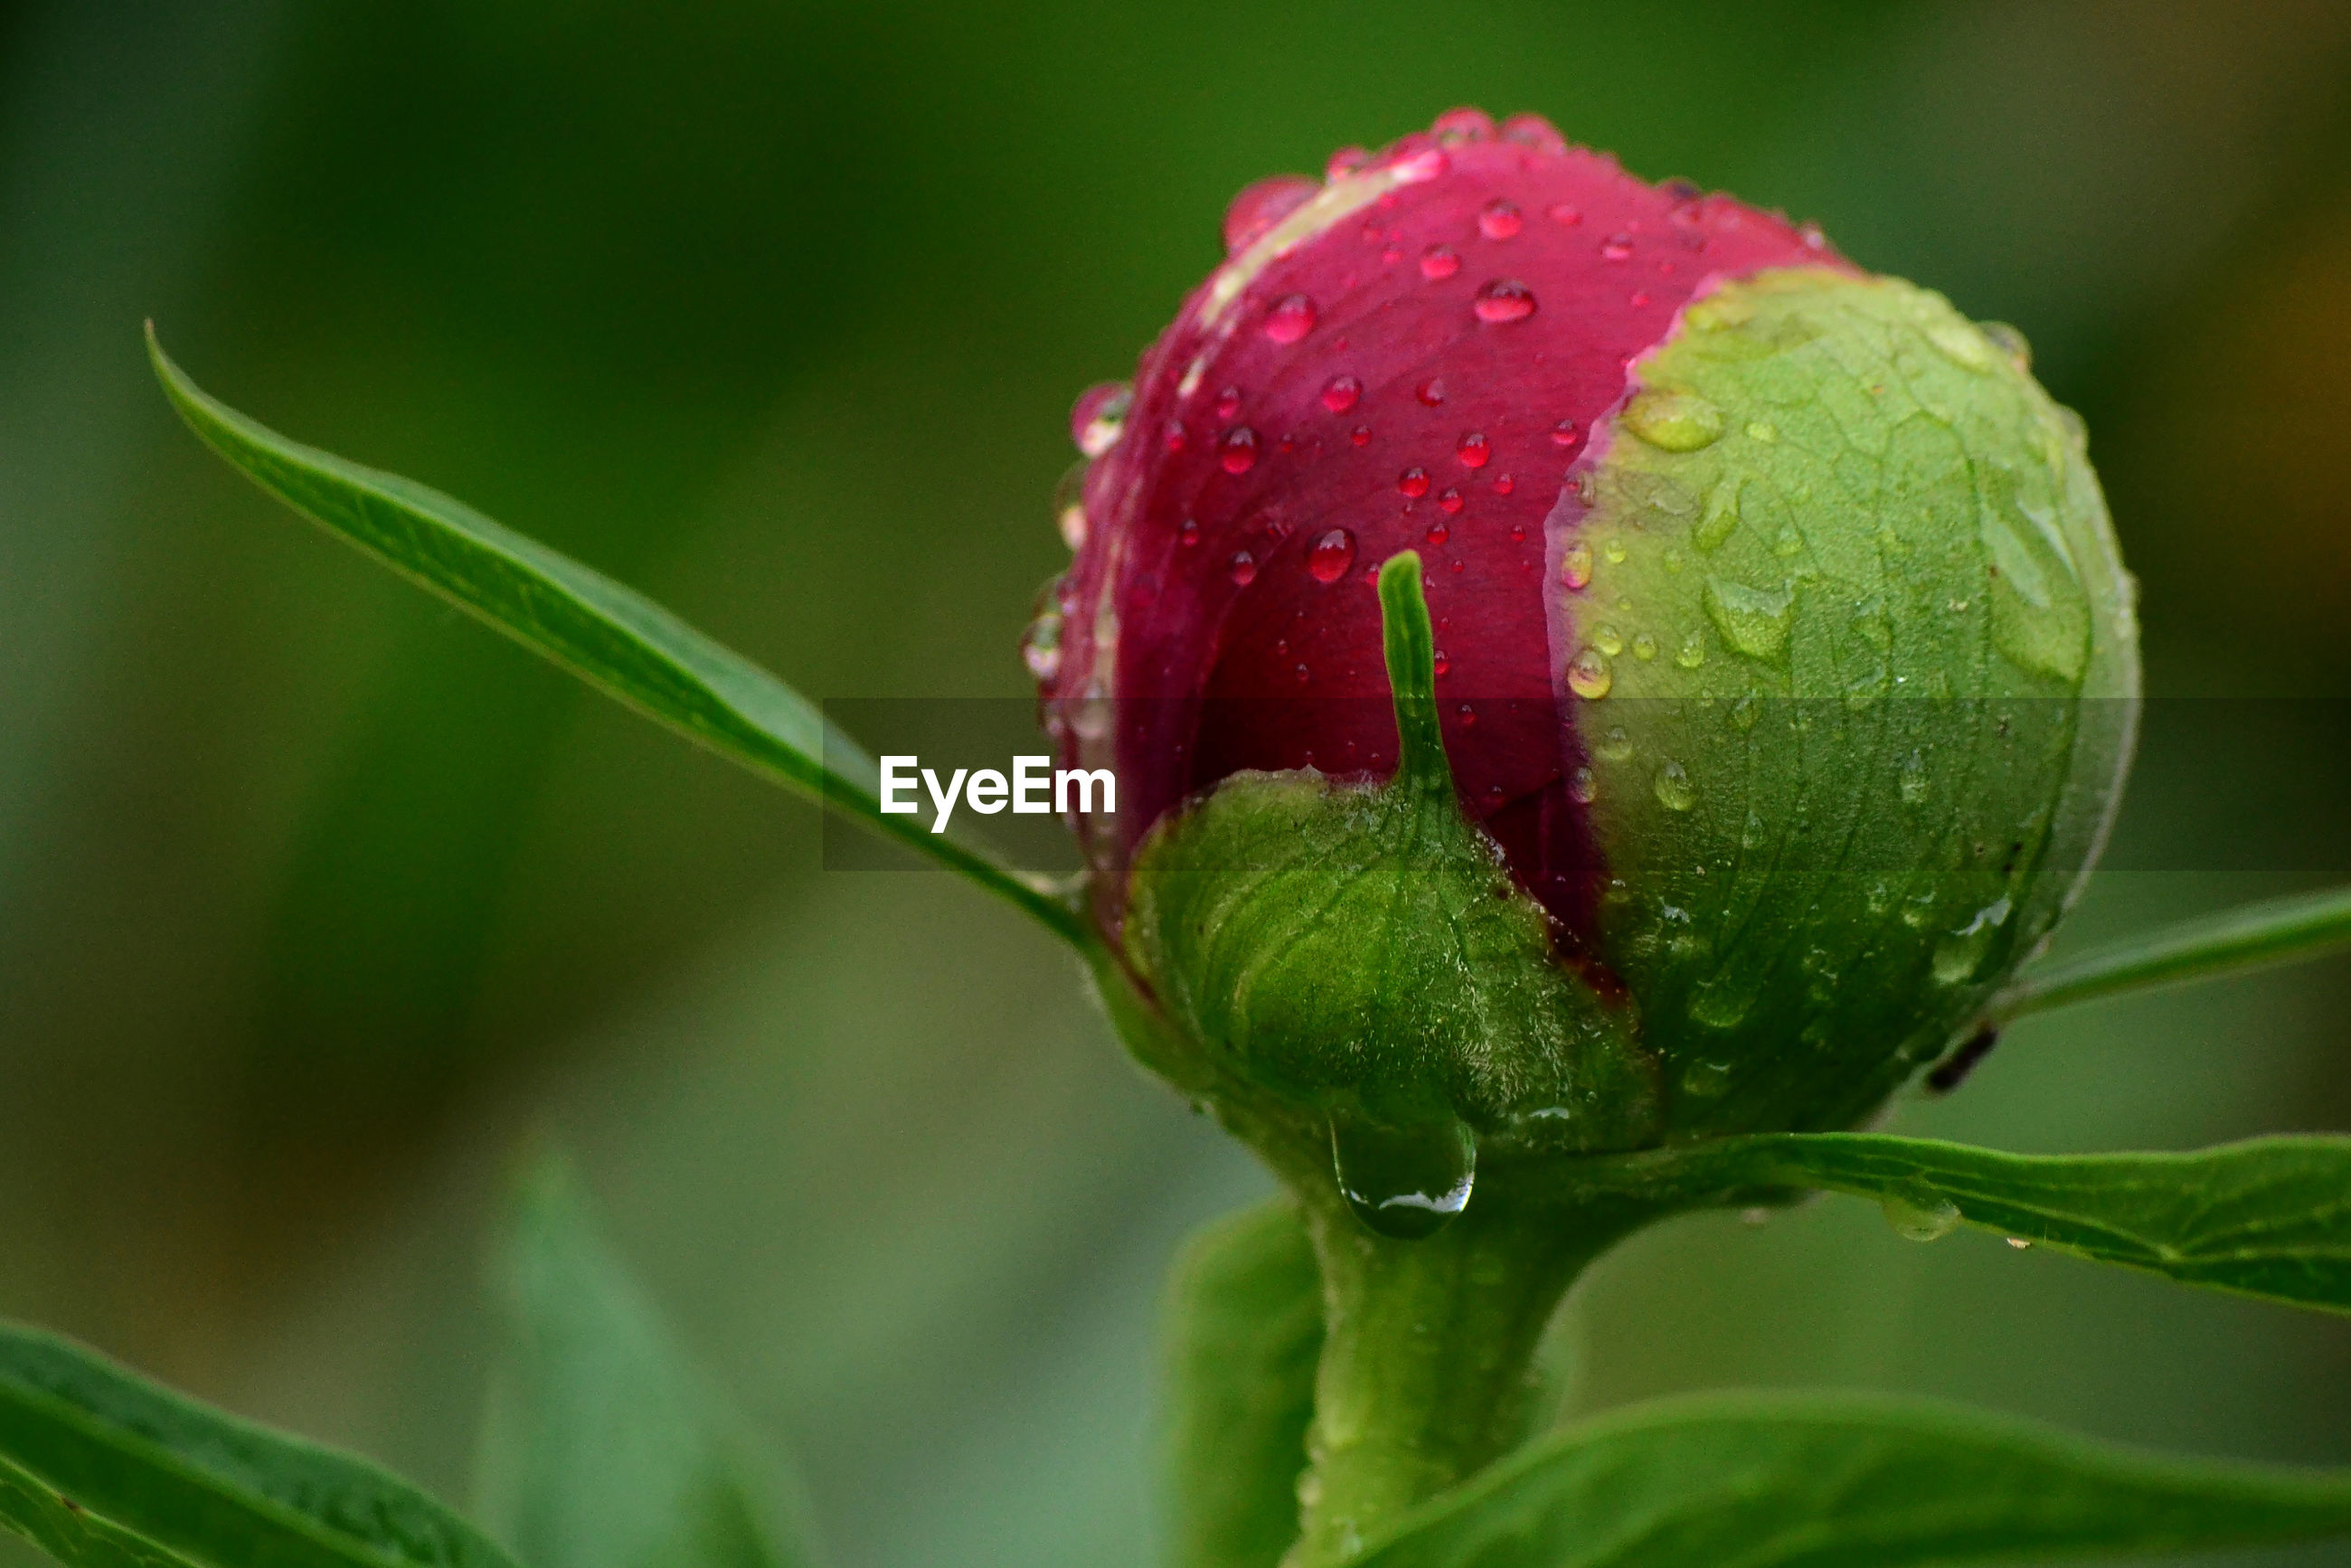 Close-up of wet red rose bud